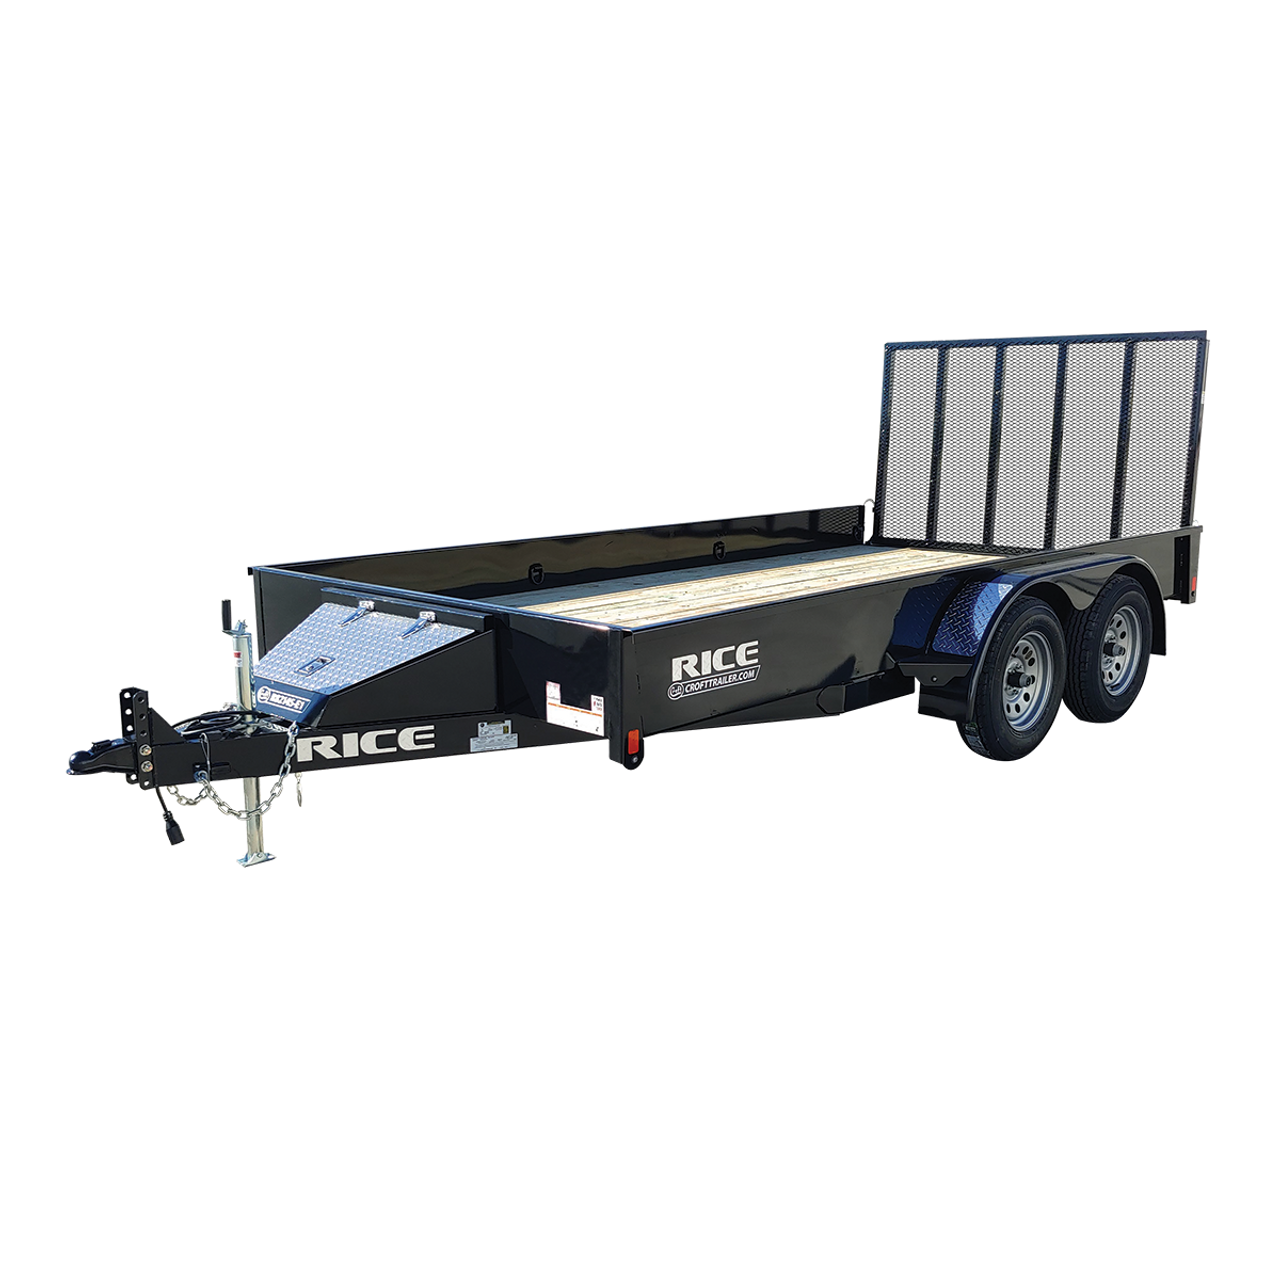 """R8214S-E1 --- 82"""" x 14' Tandem Trailer with Ramp Gate and Solid Sides"""